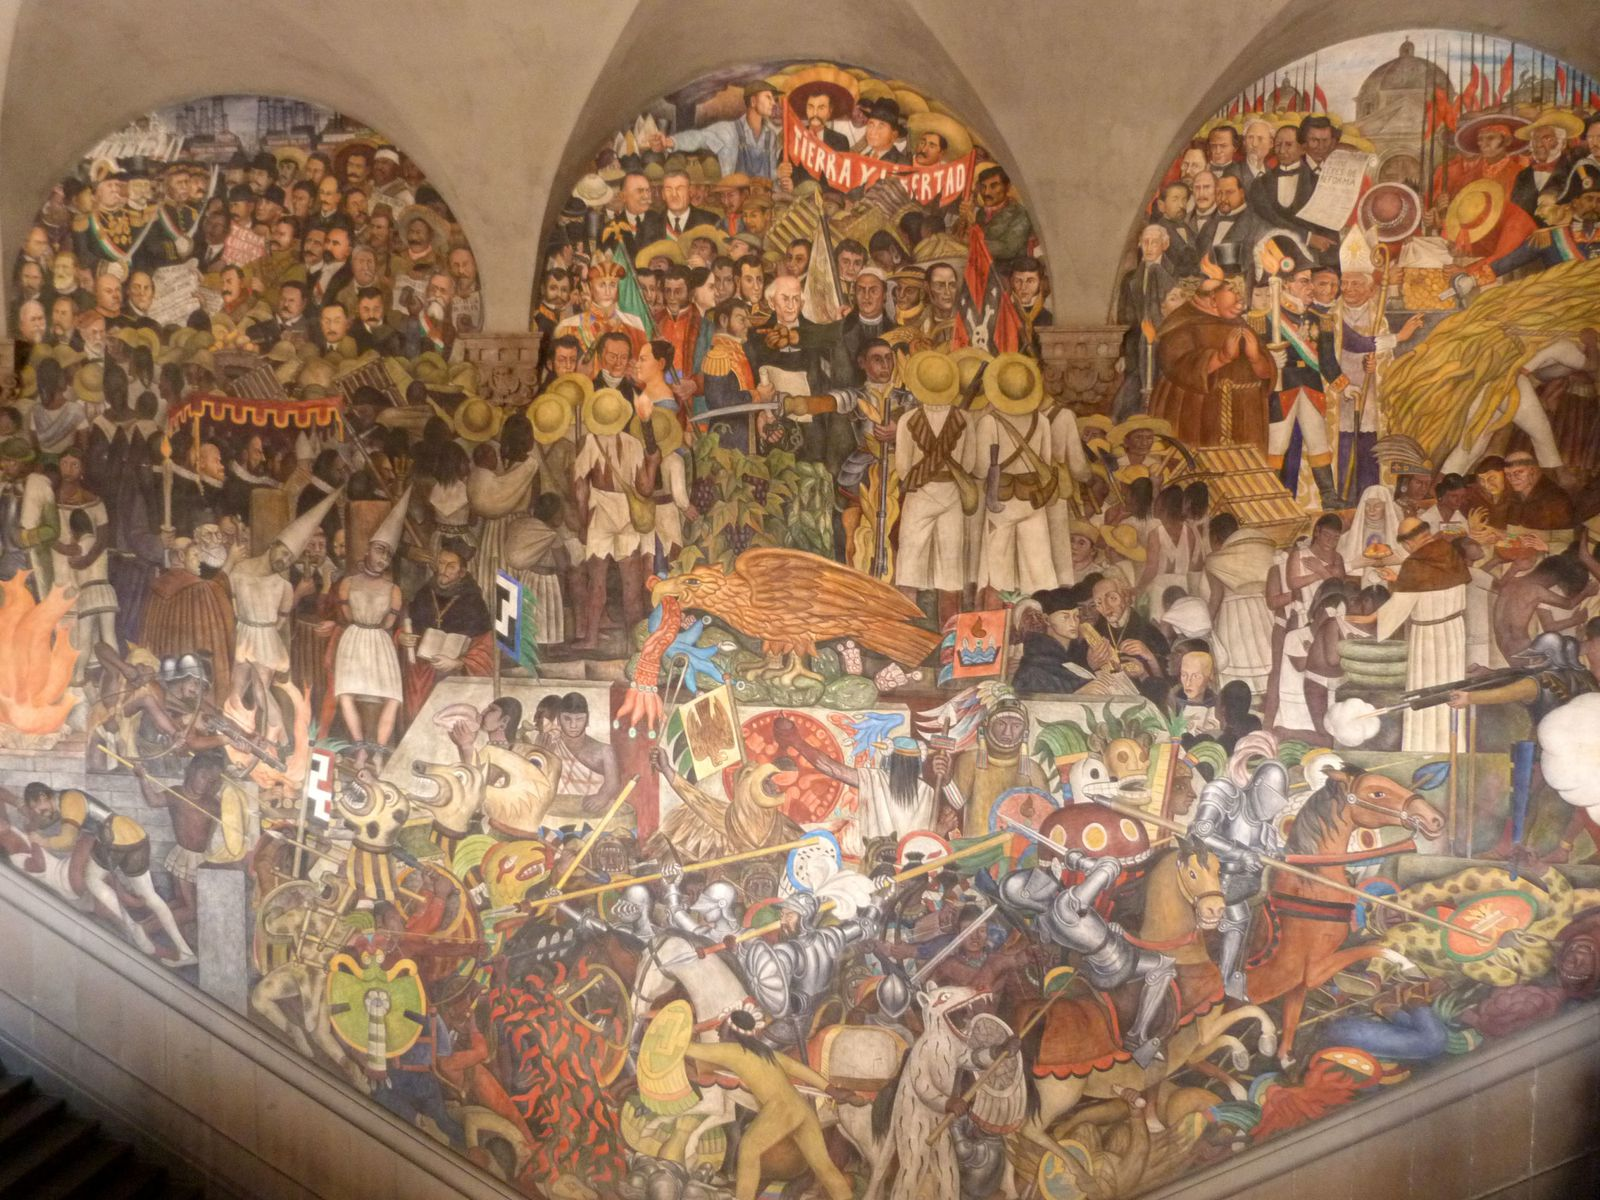 http://a142.idata.over-blog.com/3/72/68/39/Images-blog-05/2012-08-Mexique---Diego-Rivera003.jpg